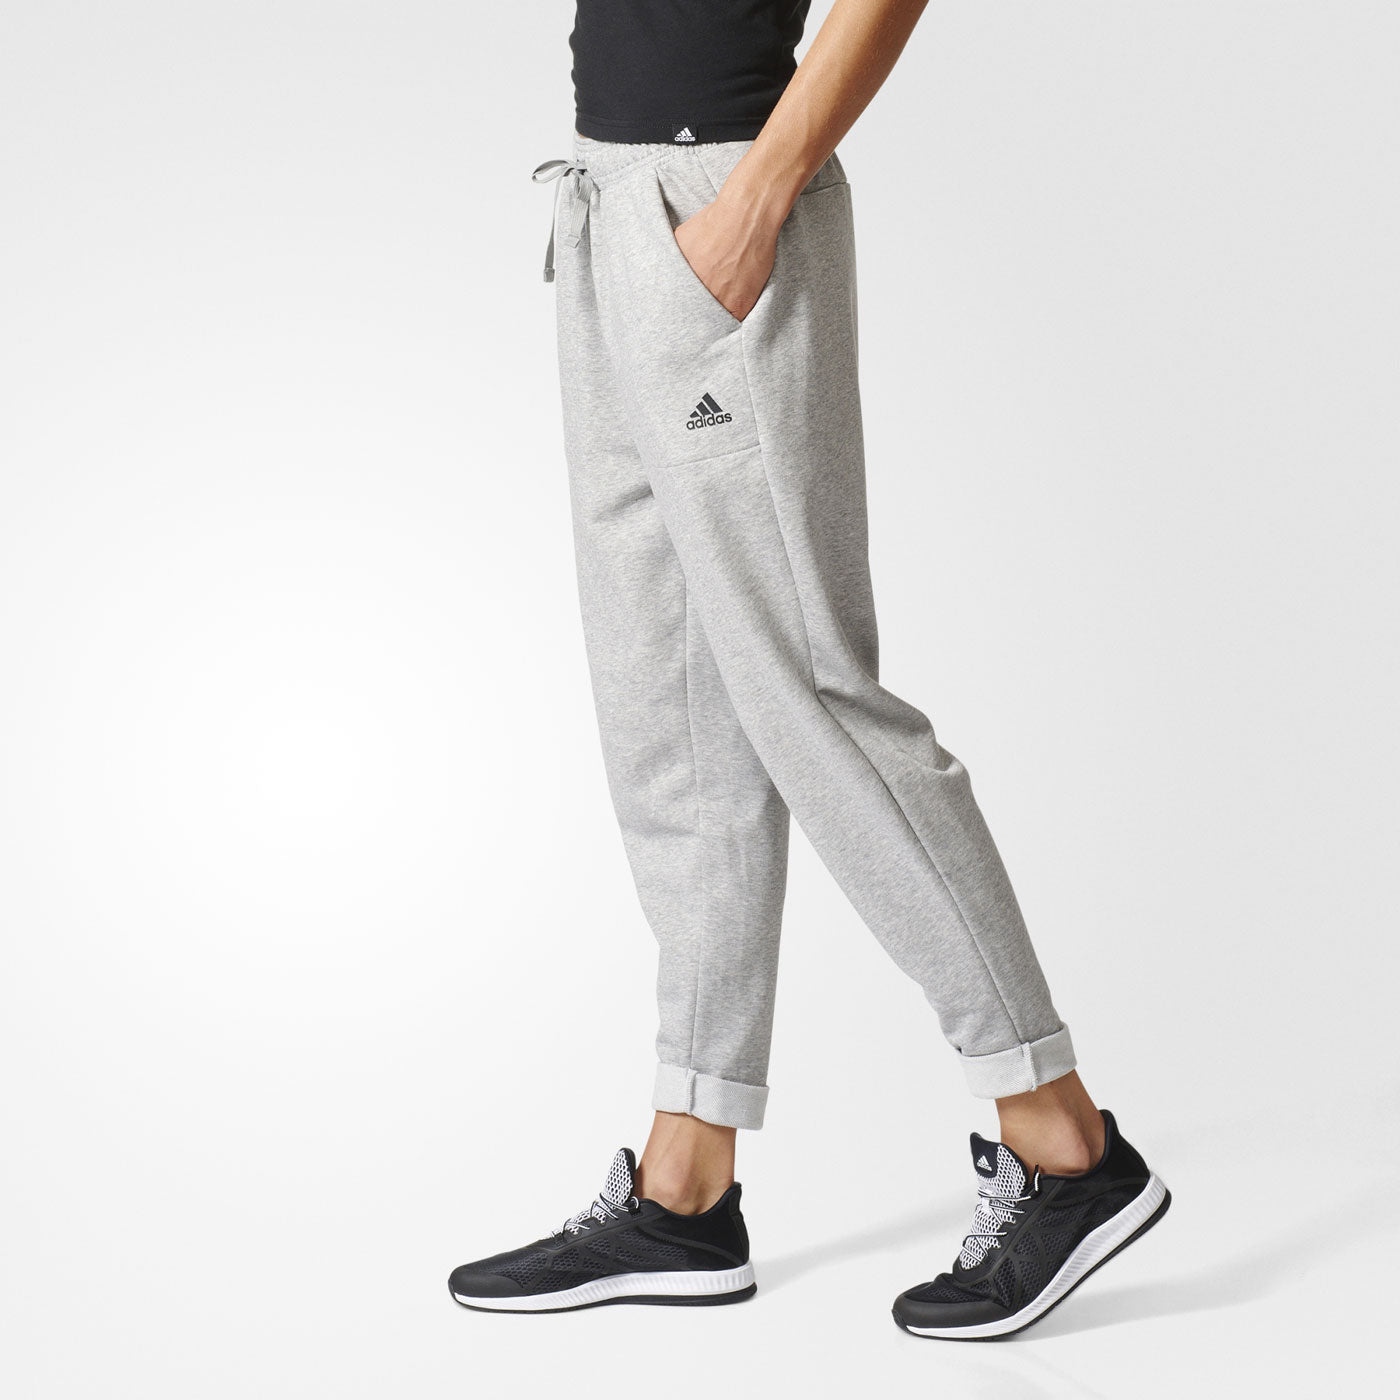 Adidas ESSENTIALS SOLID BOYFRIEND PANT Women's pants B45781